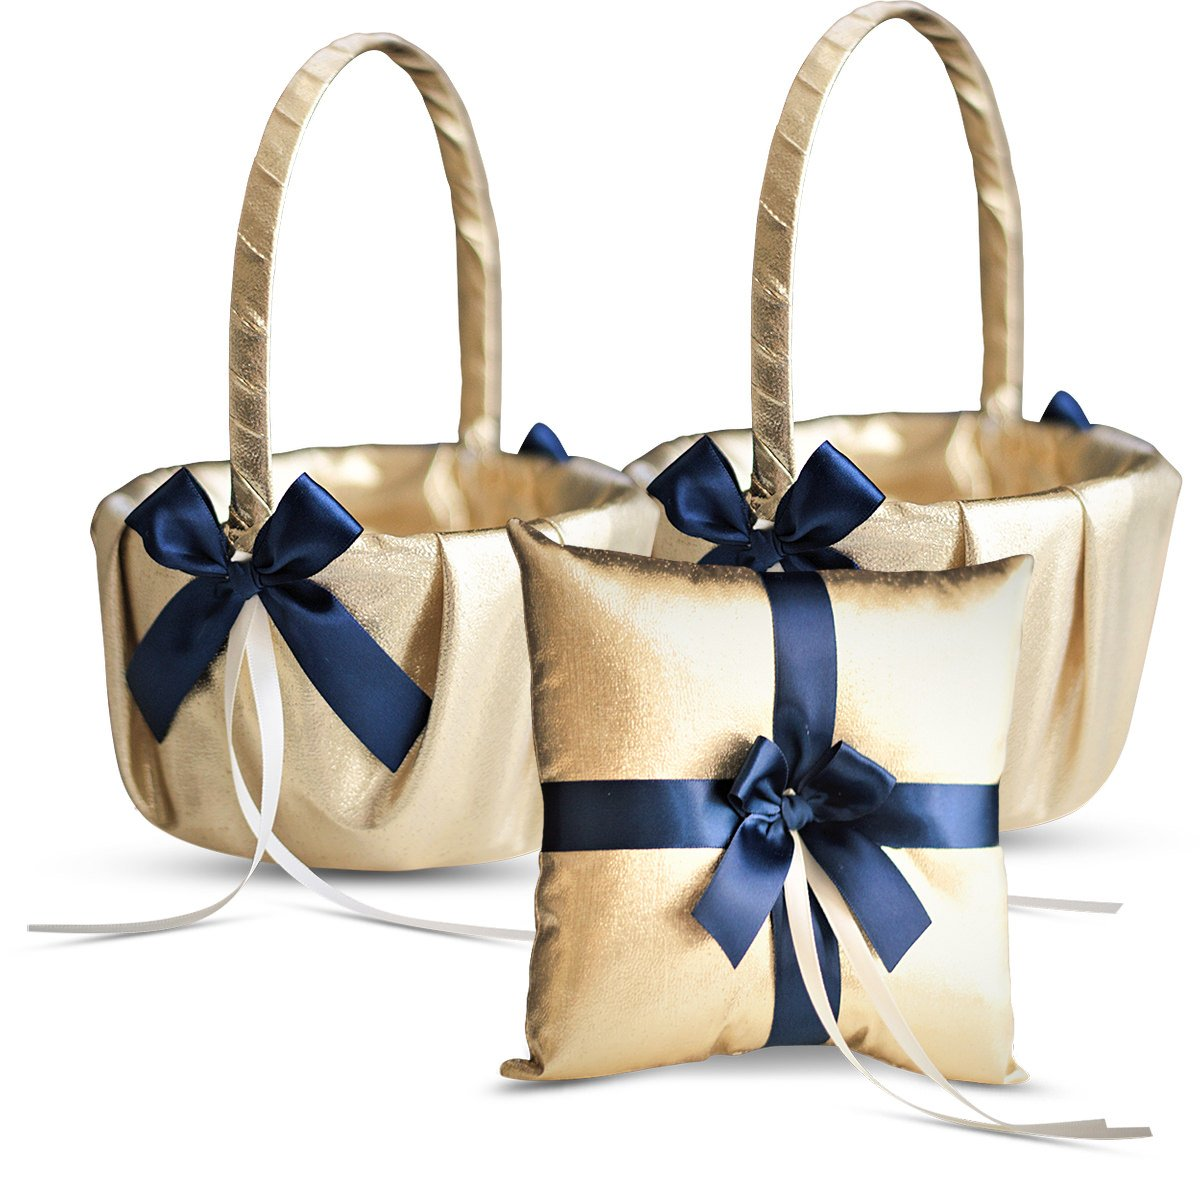 Roman Store Gold & Navy Blue Wedding Ring Bearer Pillow and Flower Girl Basket Set - Satin & Ribbons - Pairs Well with Most Dresses & Themes - Splendour Every Wedding Deserves